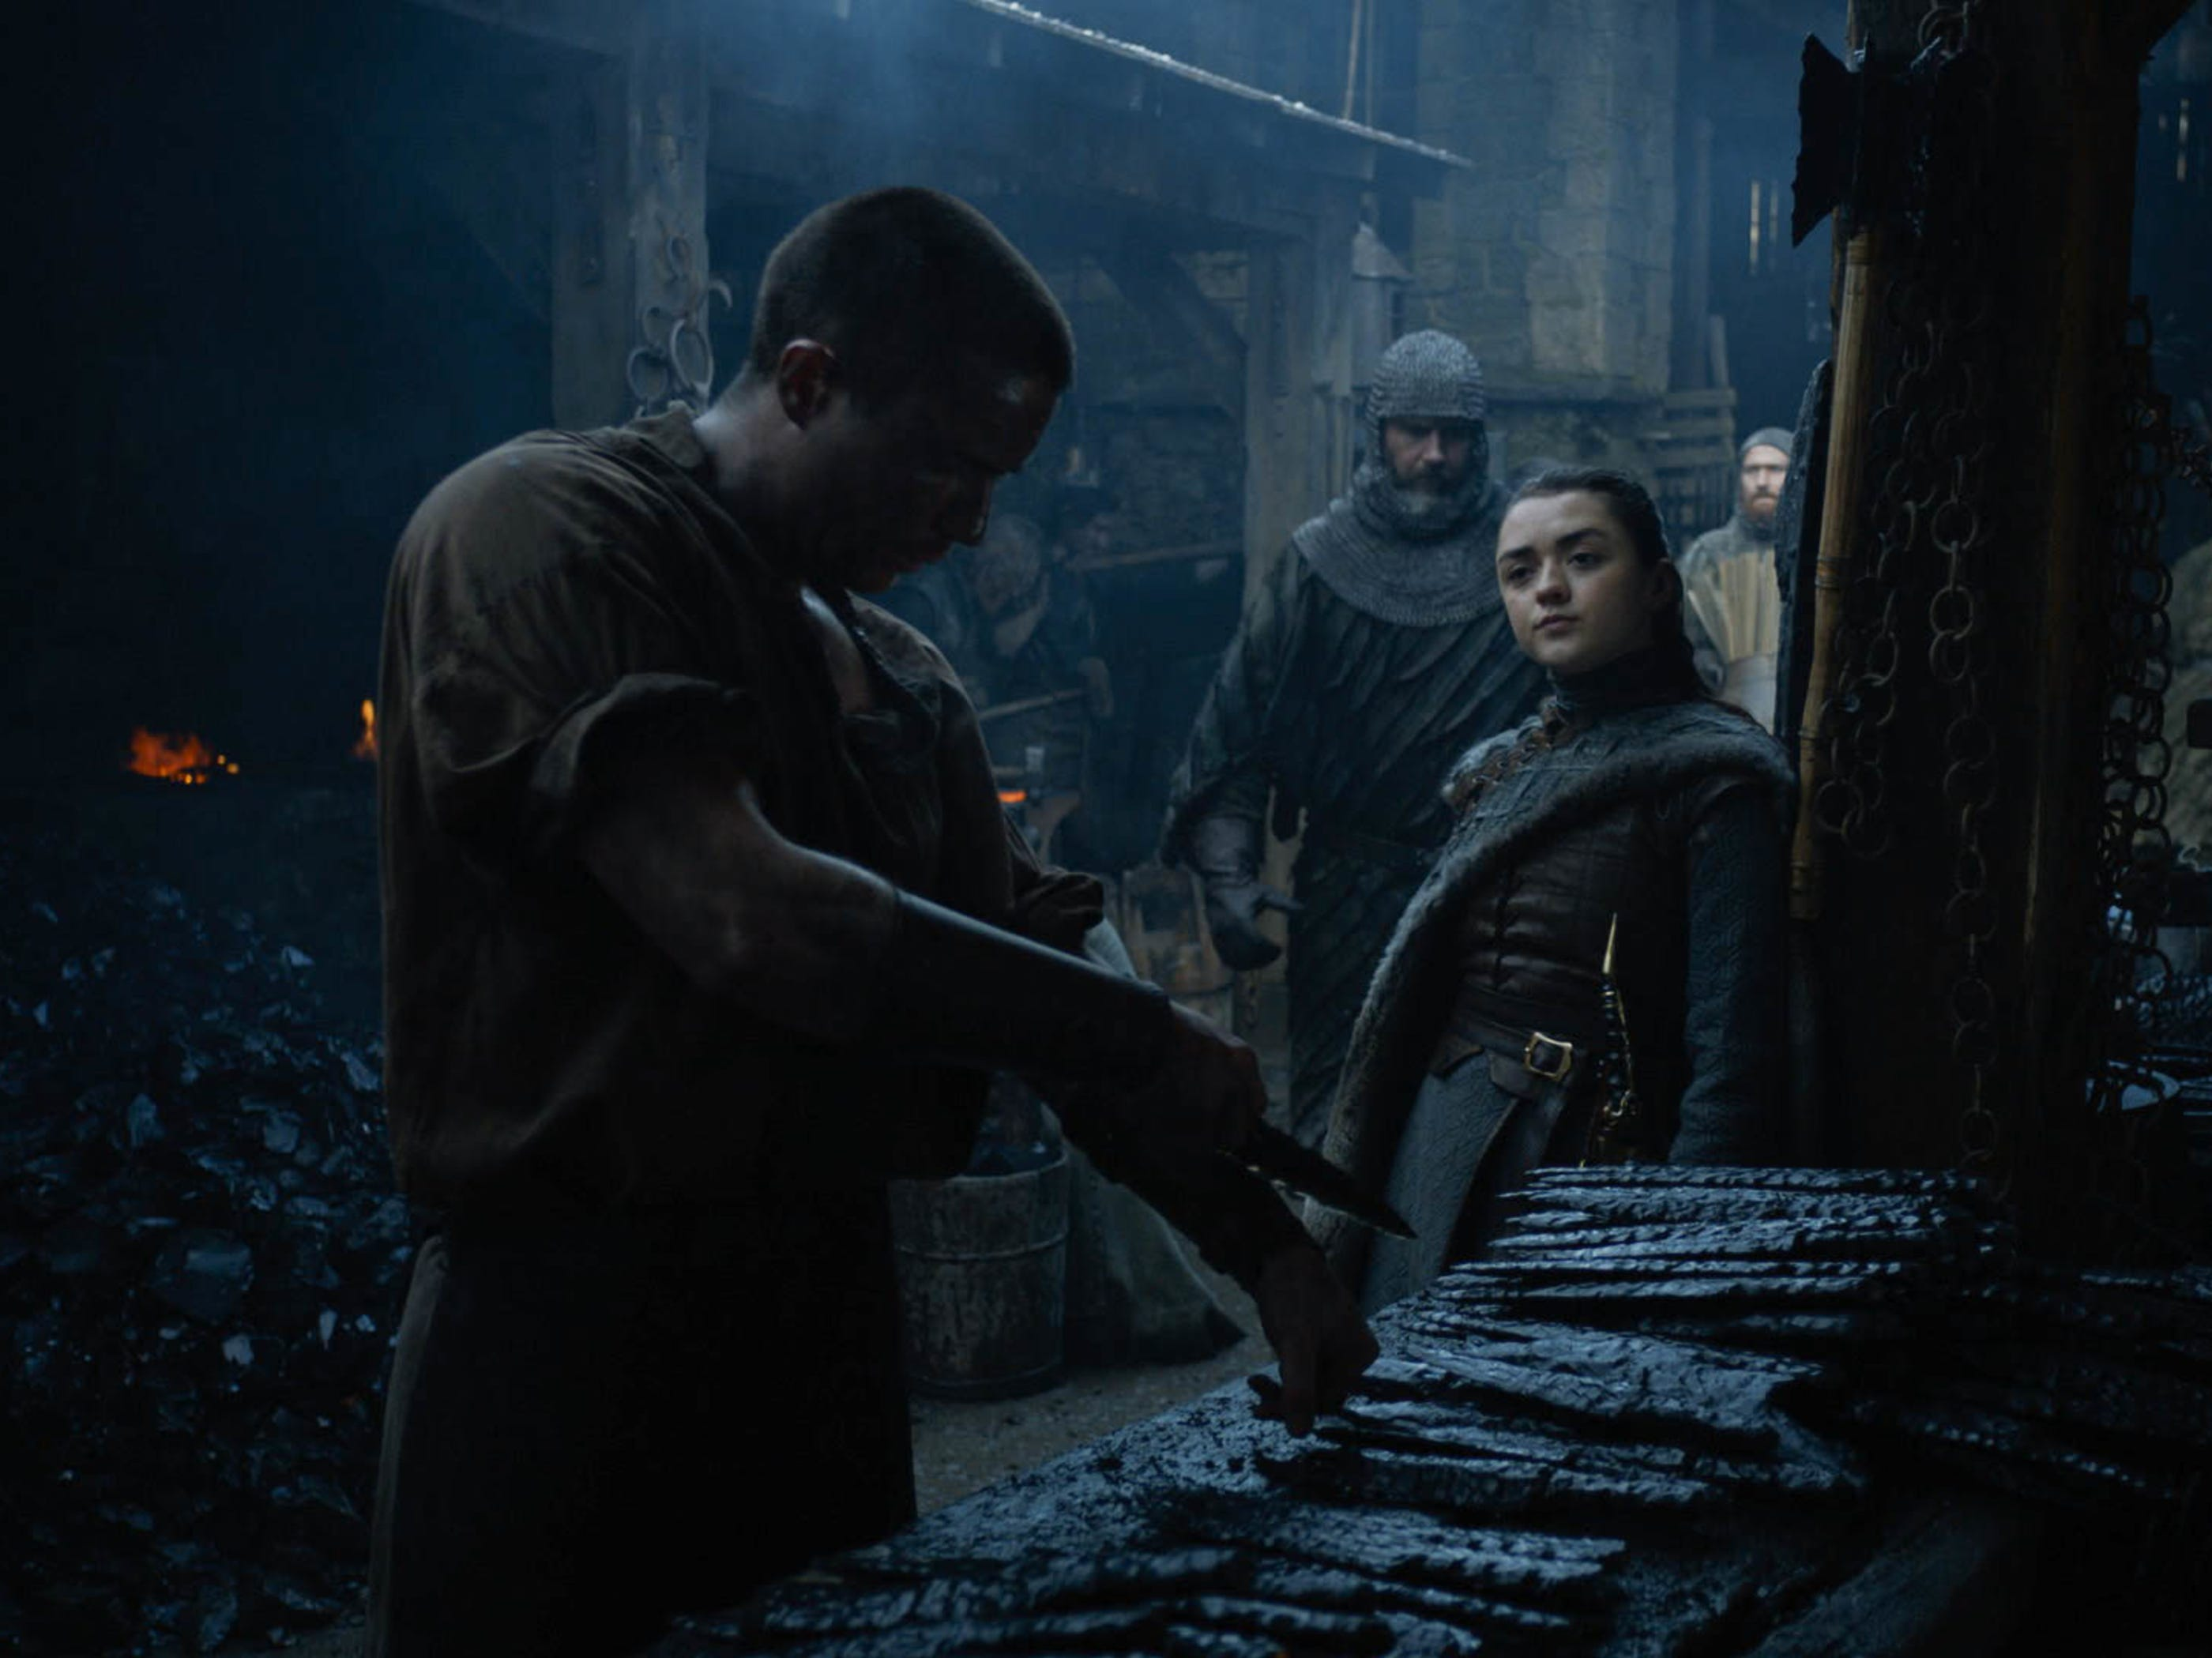 Maisie Williams reminds 'Game of Thrones' fans her family saw that sex scene: 'Kill me'